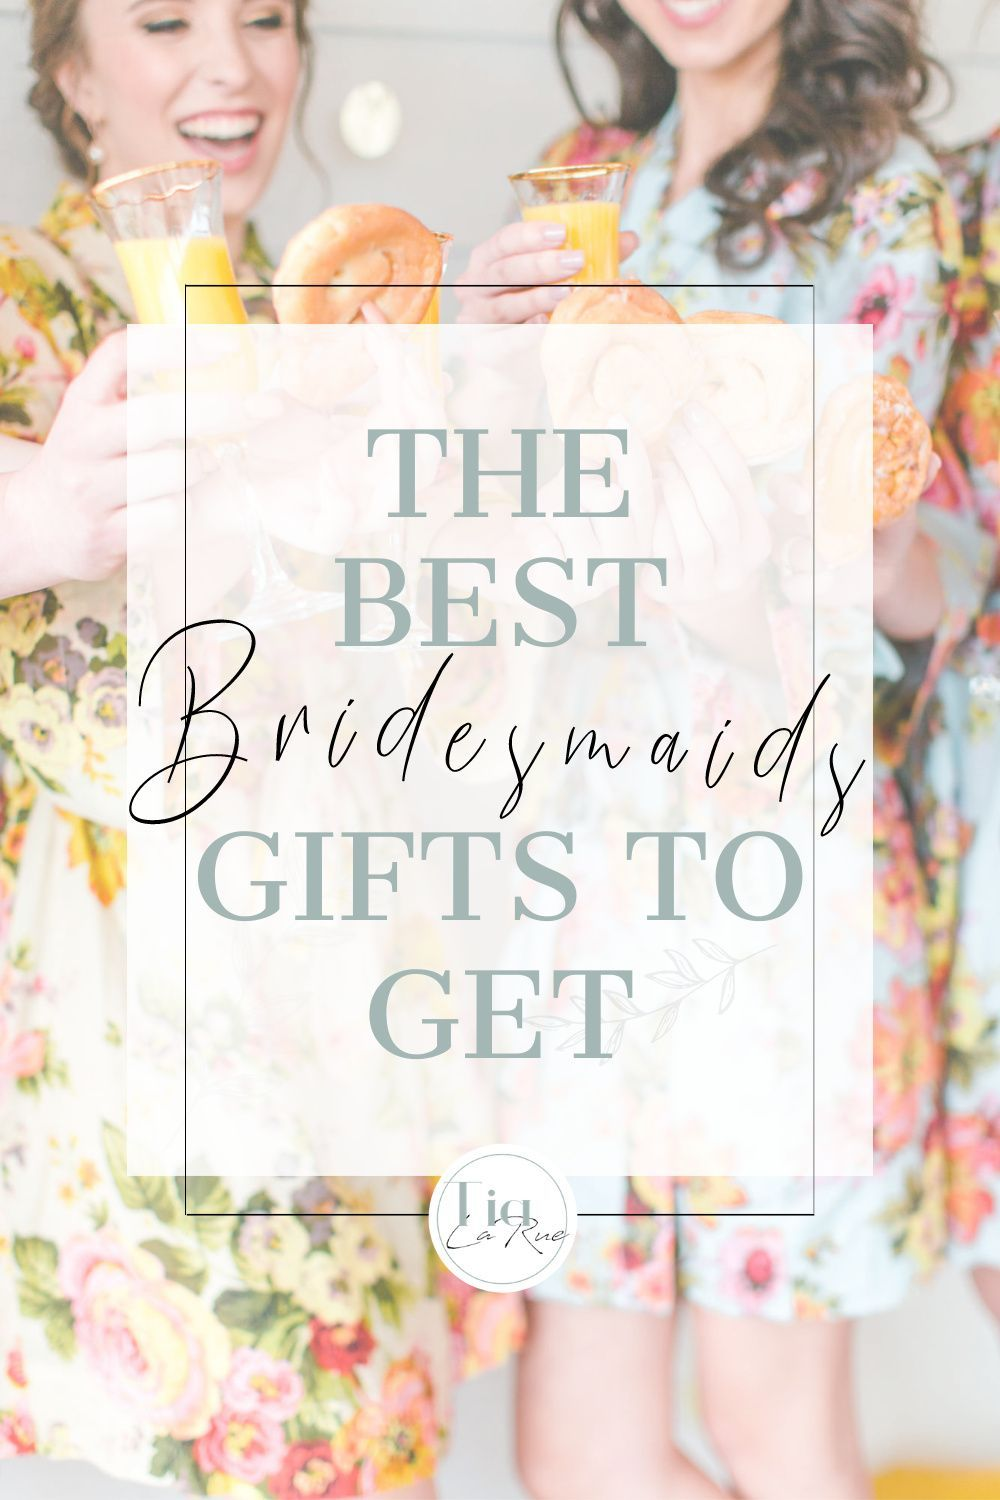 Practical Bridesmaids Gifts That Your Bride Tribe Will Love In 2020 Practical Bridesmaid Gifts Wedding Gifts For Bridesmaids Diy Wedding Planning